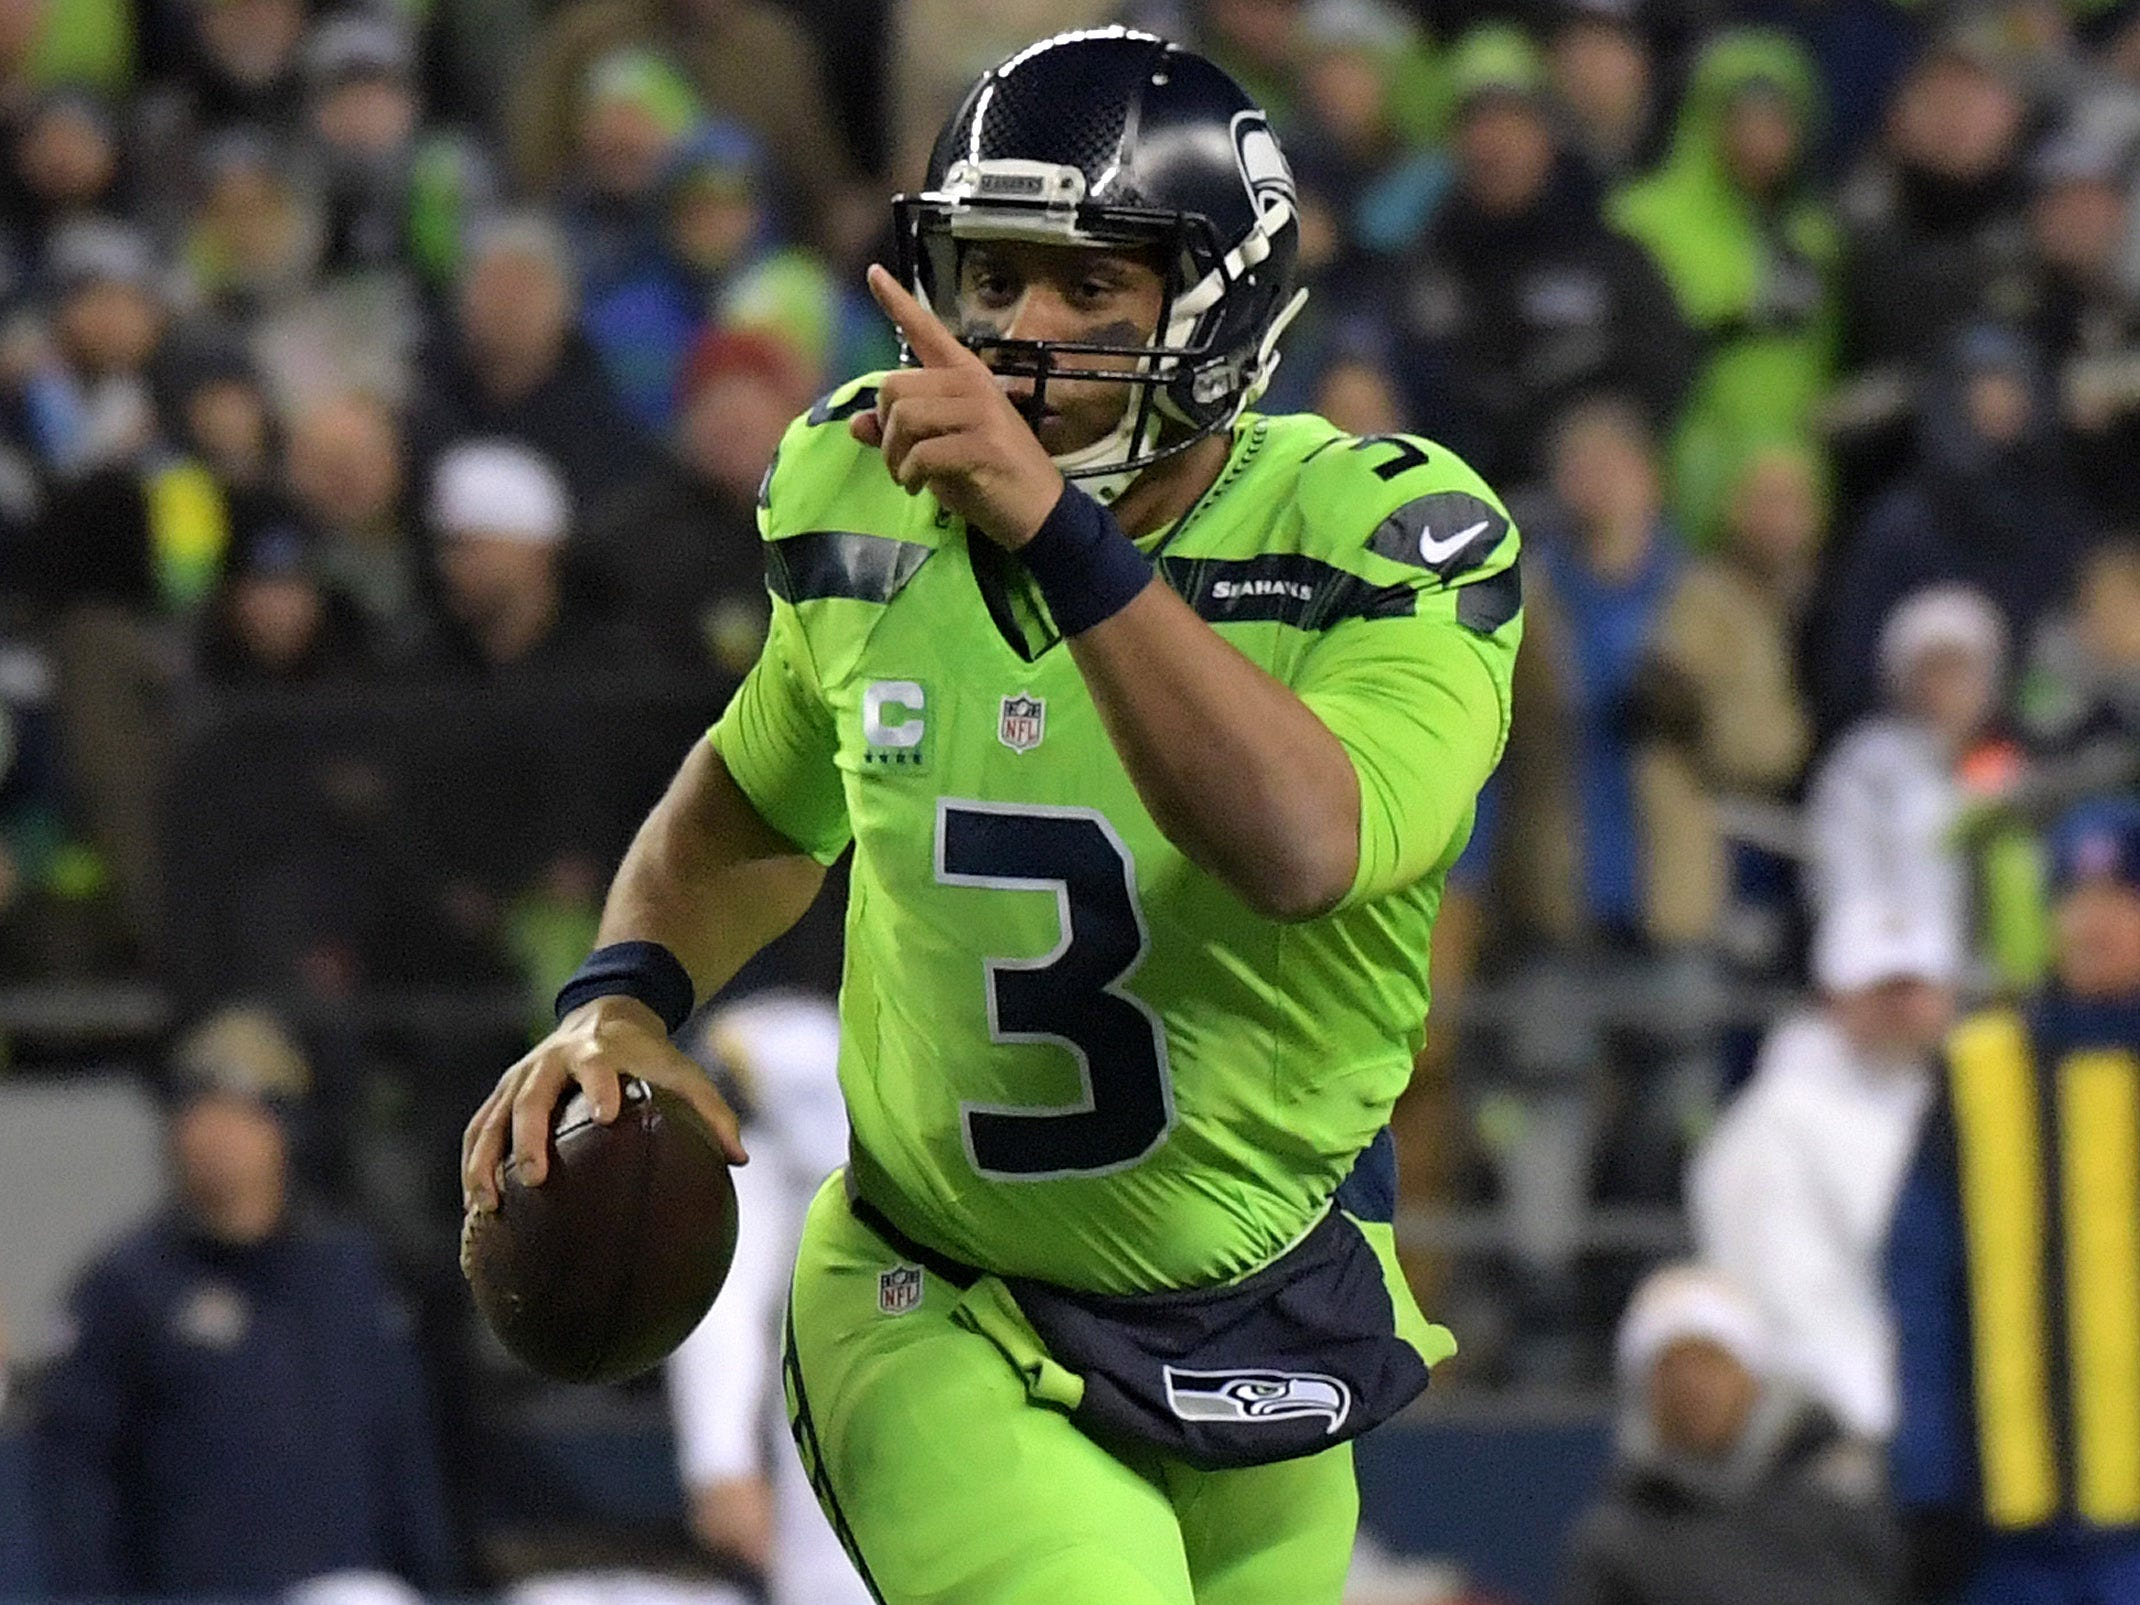 The Seahawks' all-neon green look might be the worst of the 2016 color rush uniforms.